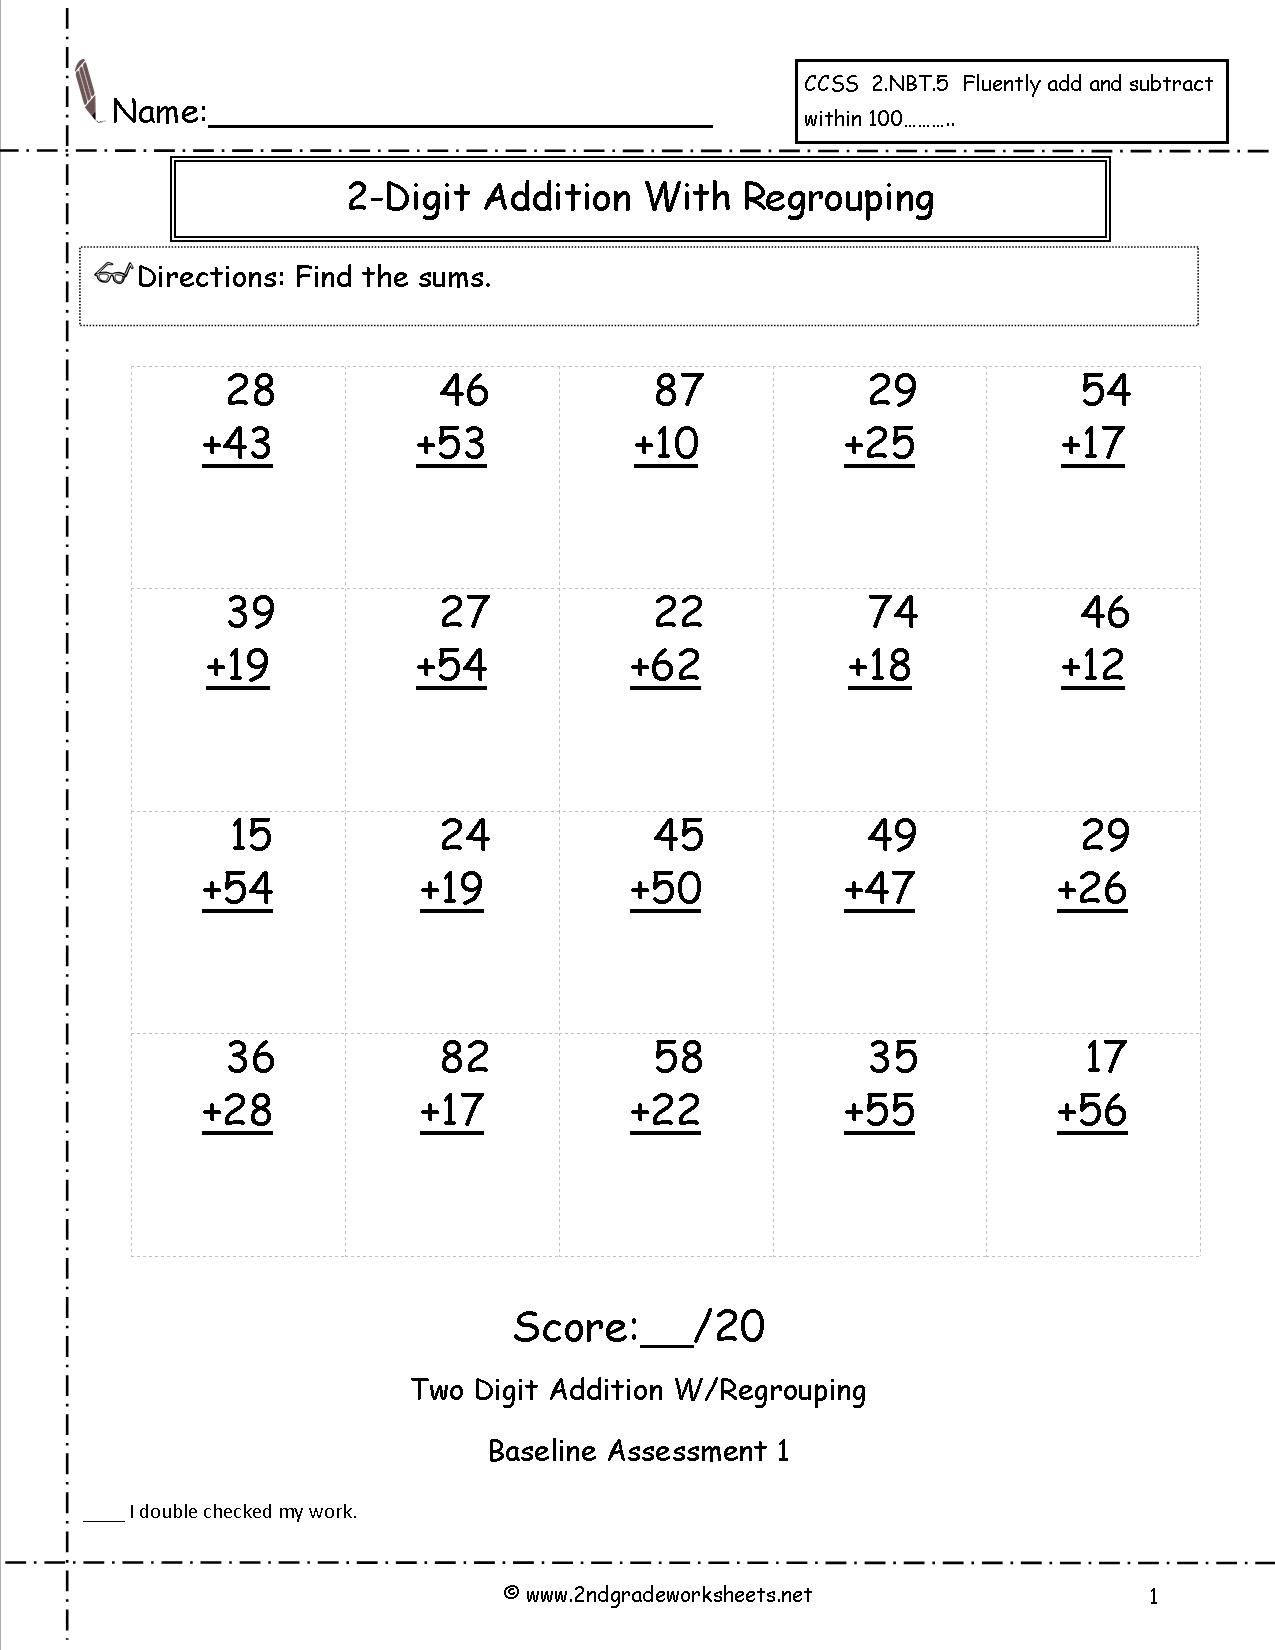 Two Digit Addition Worksheets Free Math Worksheets 2nd Grade Worksheets Addition With Regrouping Worksheets